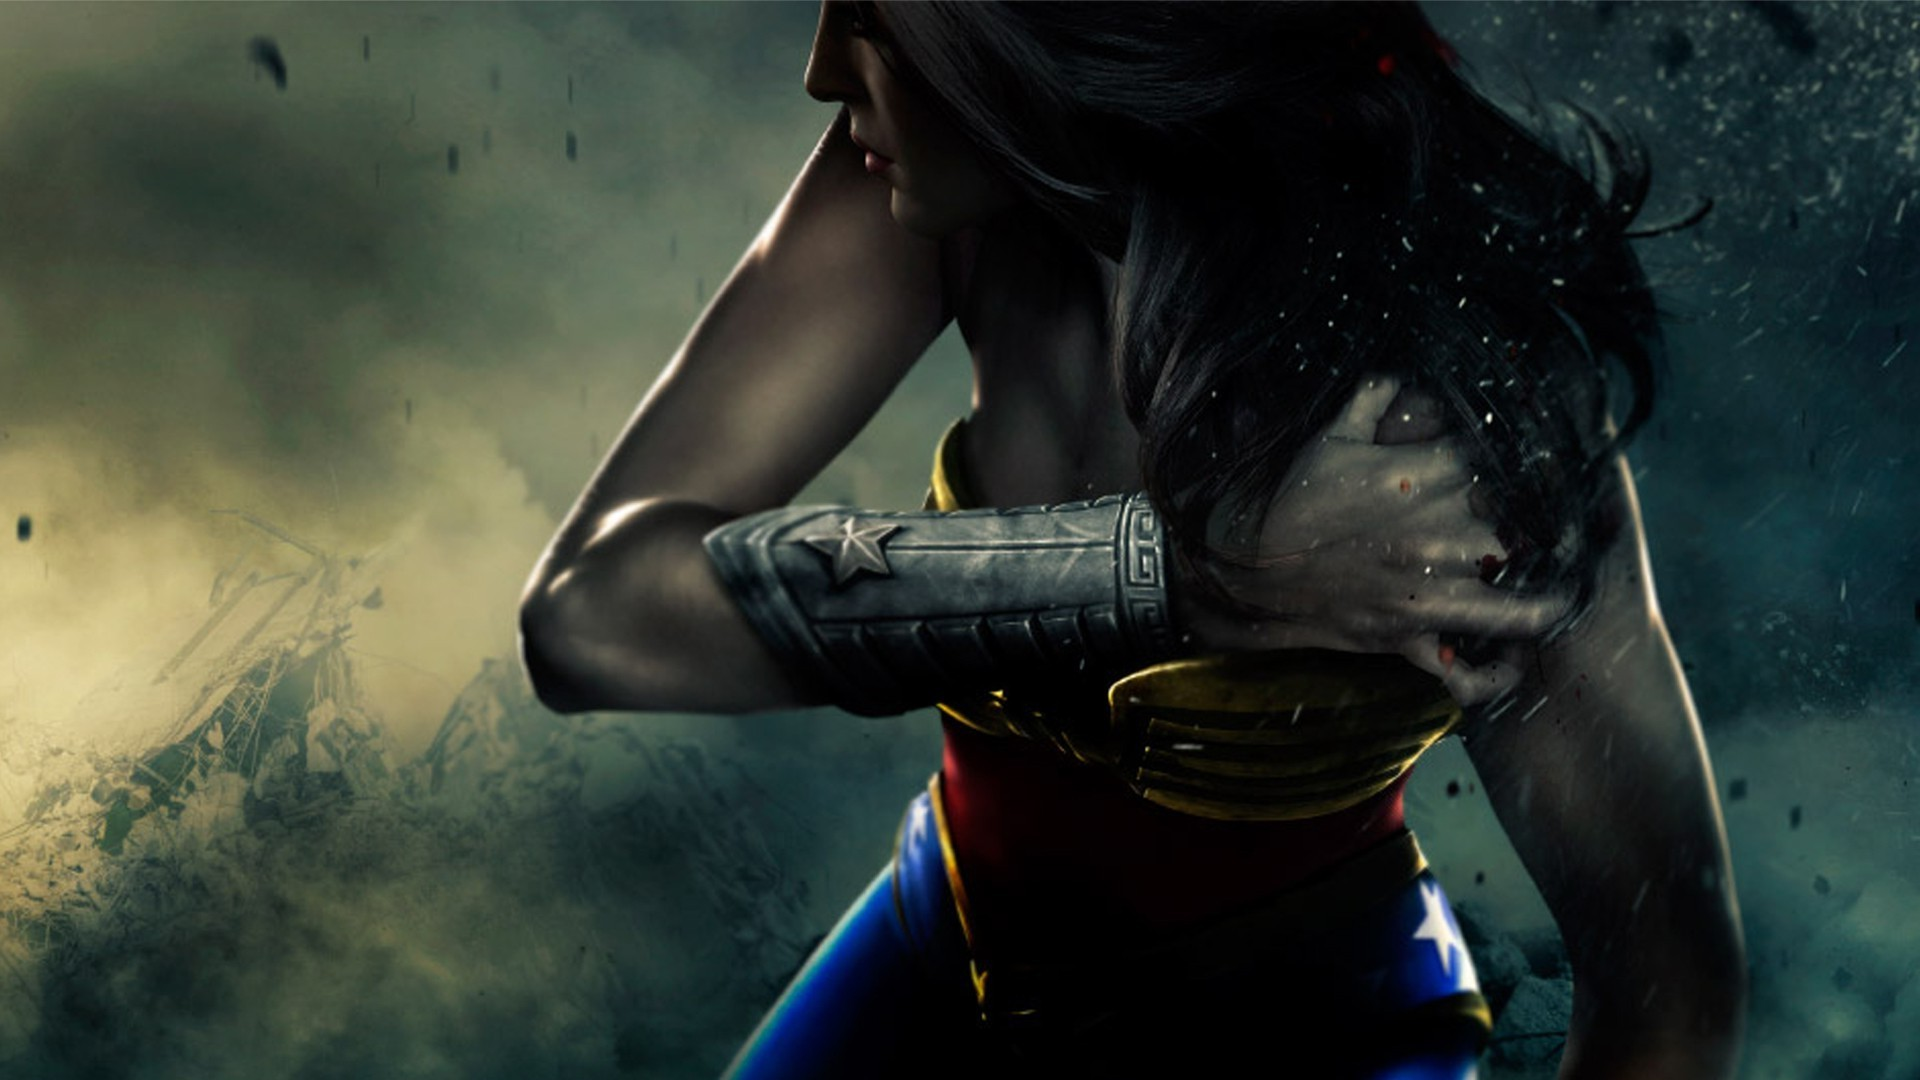 Wonder Woman HD Wallpapers for desktop download 1920x1080